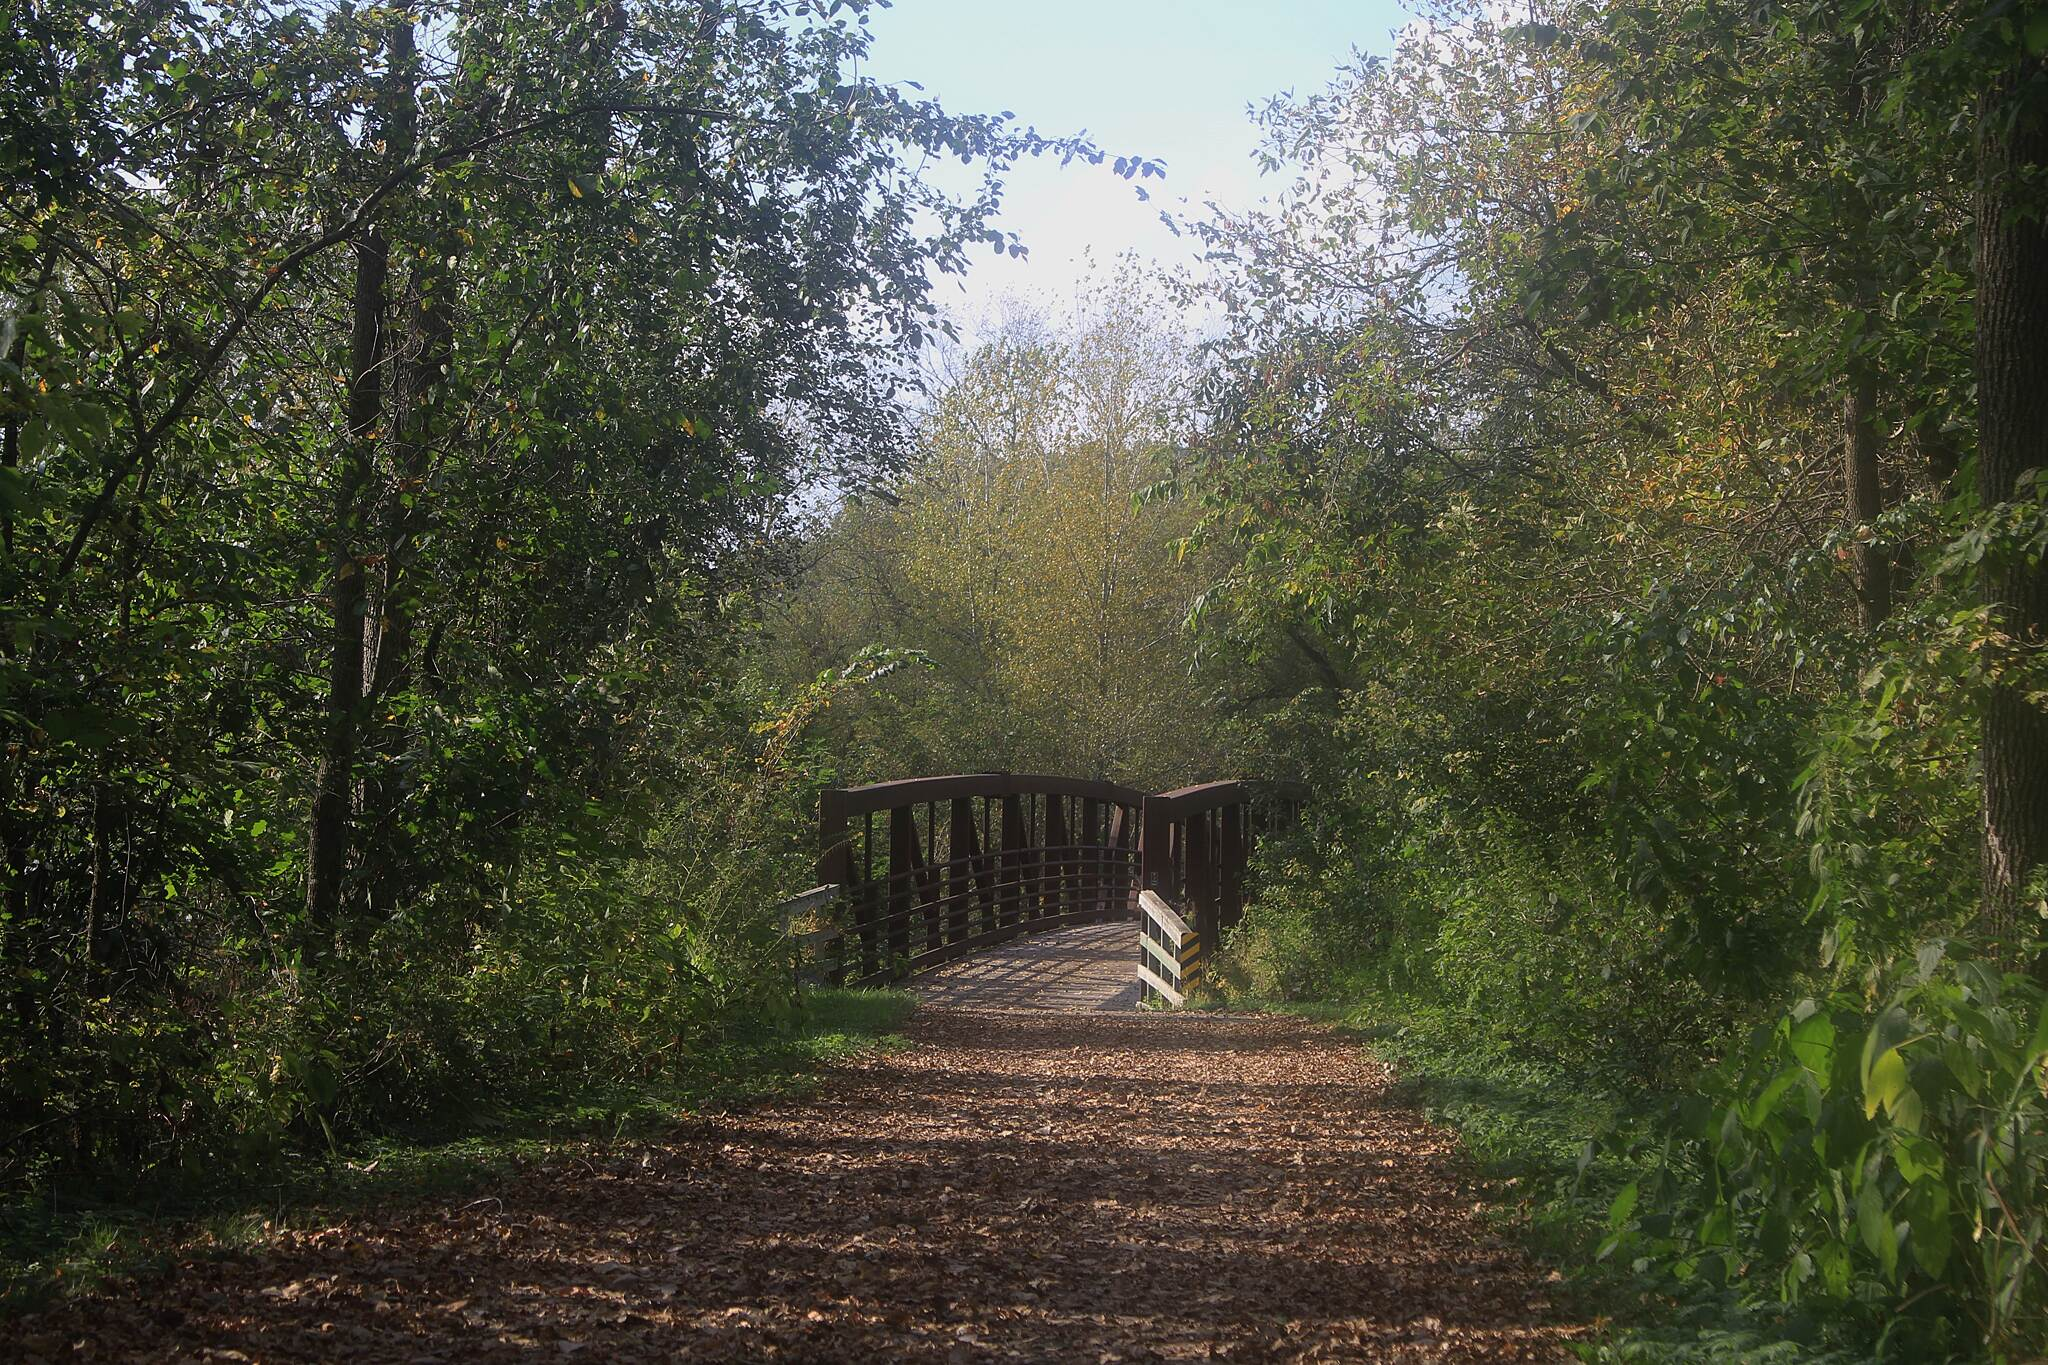 Goodhue Pioneer State Trail A Fall View Beautiful bridge, leaf covered path, and trees changing color.  That's the life!